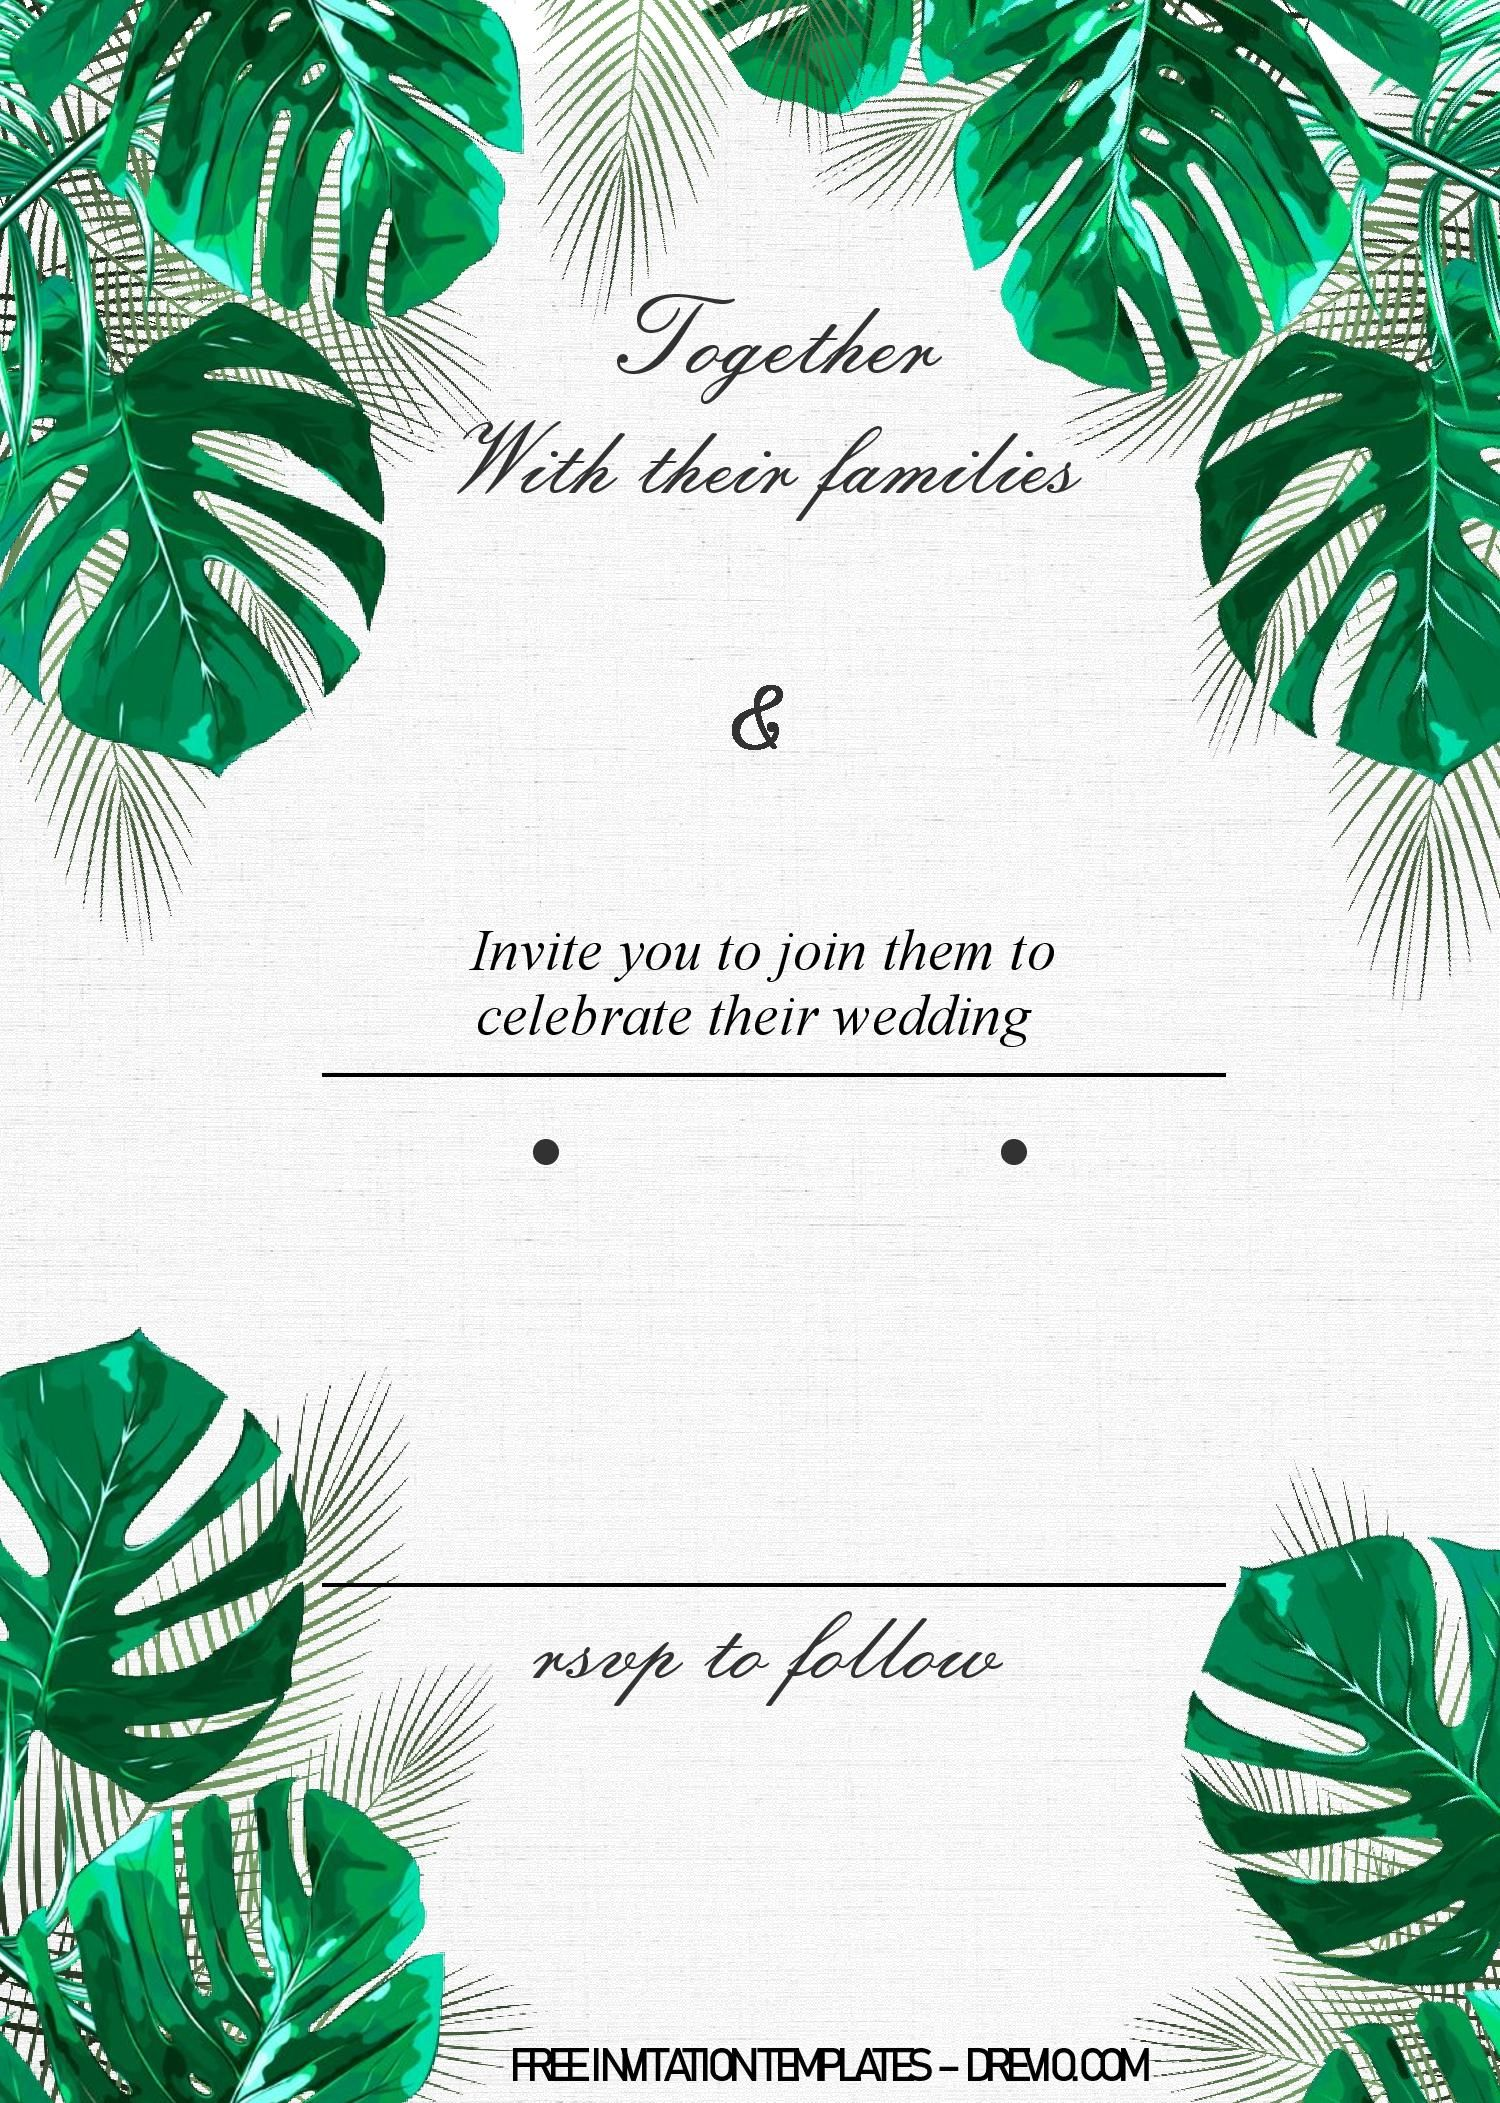 Tropical Leaves Invitation Templates Editable With Ms Word Leaf Invitations Invitation Template Printable Invitations Rose gold foil metallic tropical leaves romantic announcement postcard | zazzle.com. invitation template printable invitations